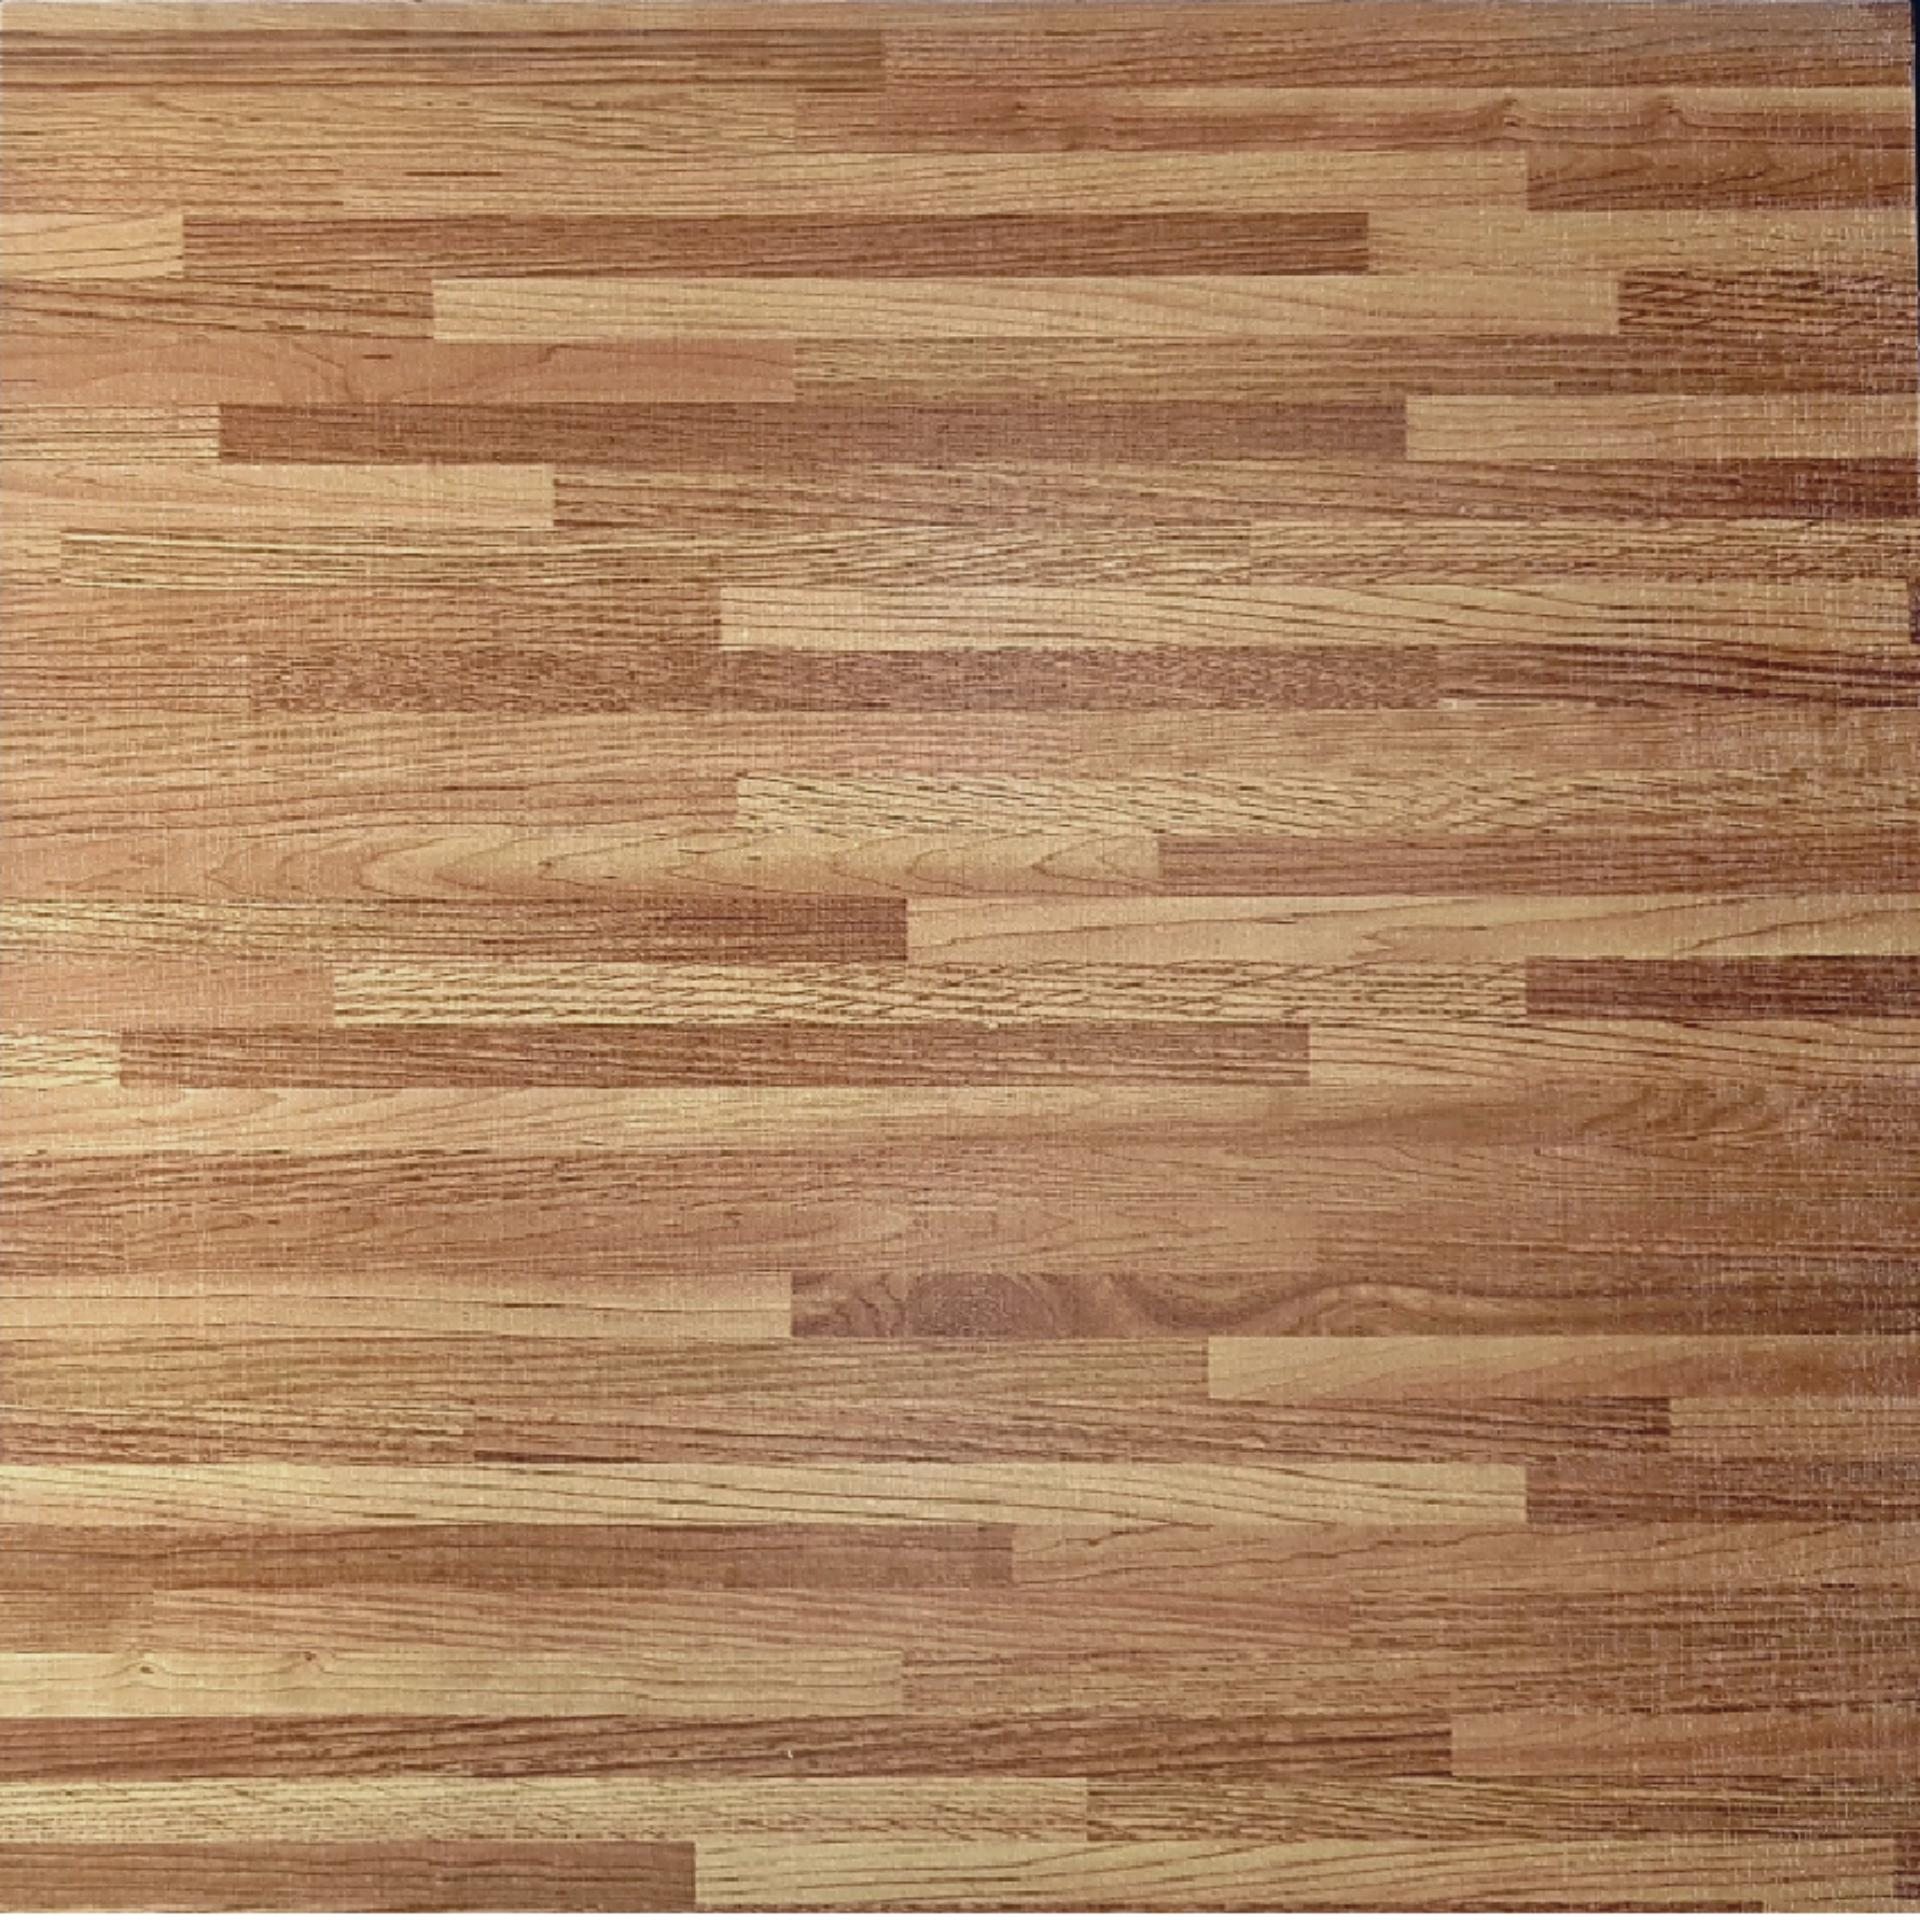 Flooring for sale floor design prices brands review in flooring for sale floor design prices brands review in philippines lazada dailygadgetfo Image collections